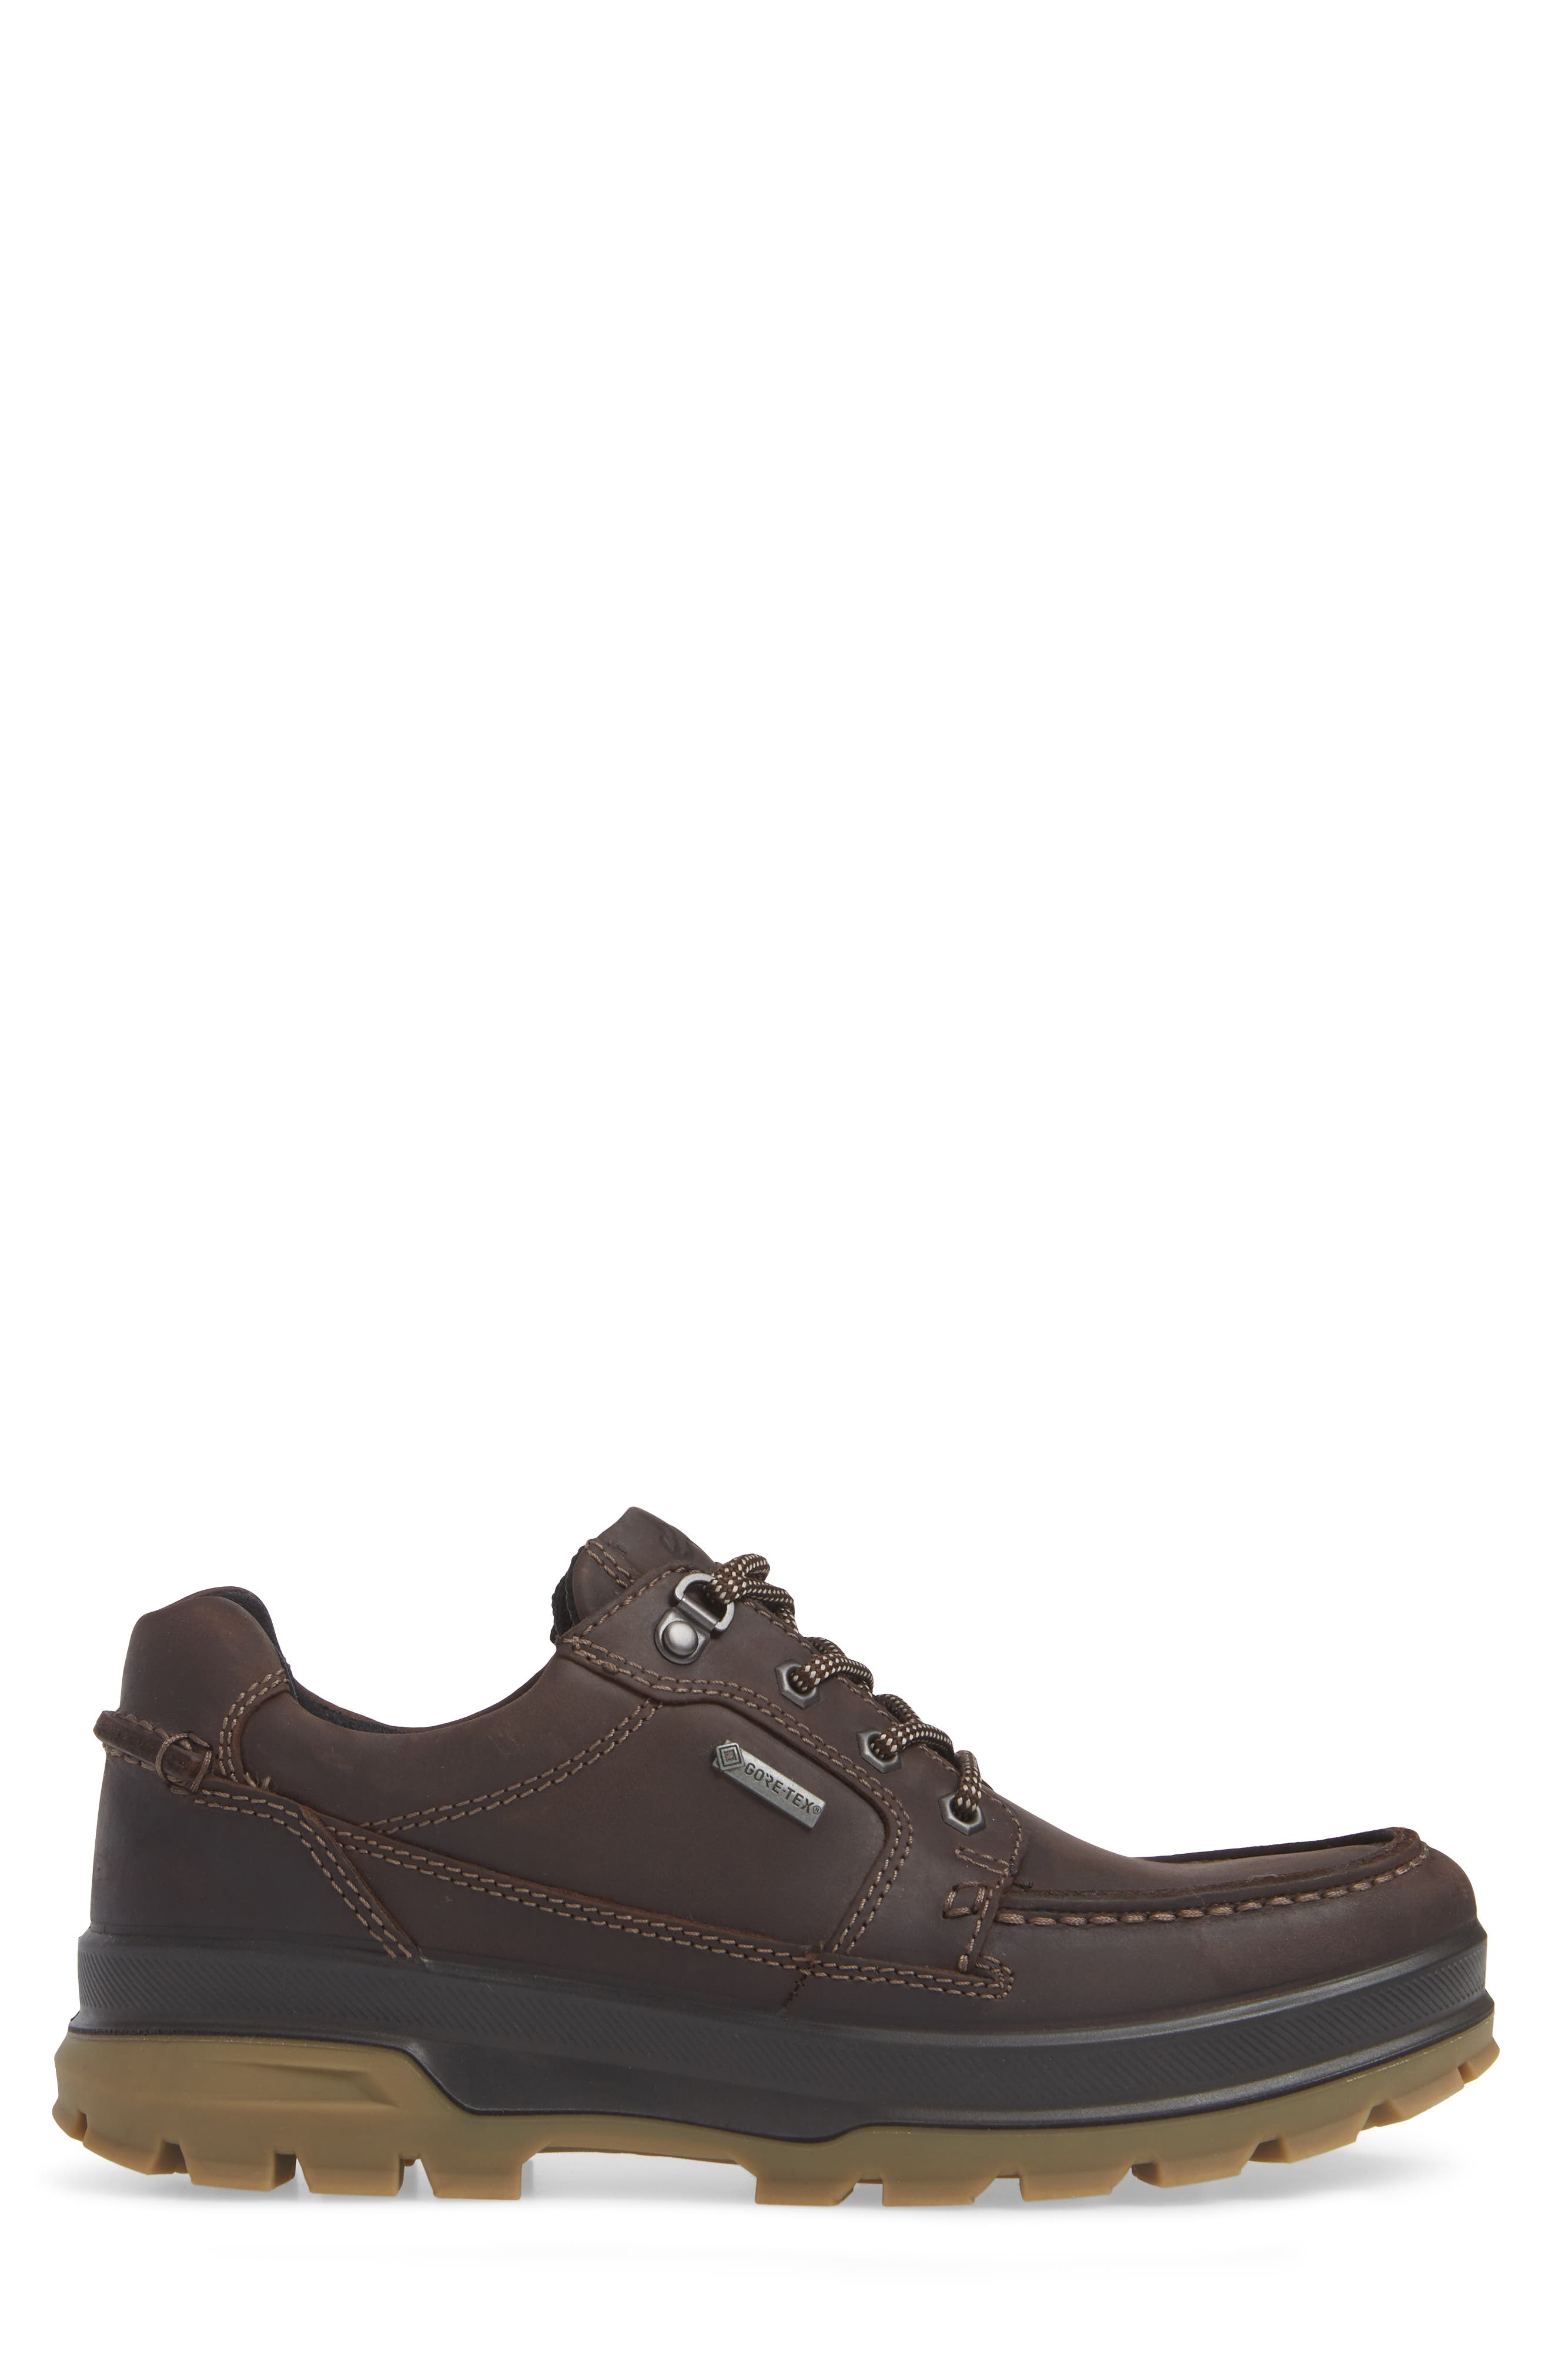 Rugged Track Low Gore-Tex<sup>®</sup> Oxford,                             Alternate thumbnail 3, color,                             MOCHA LEATHER